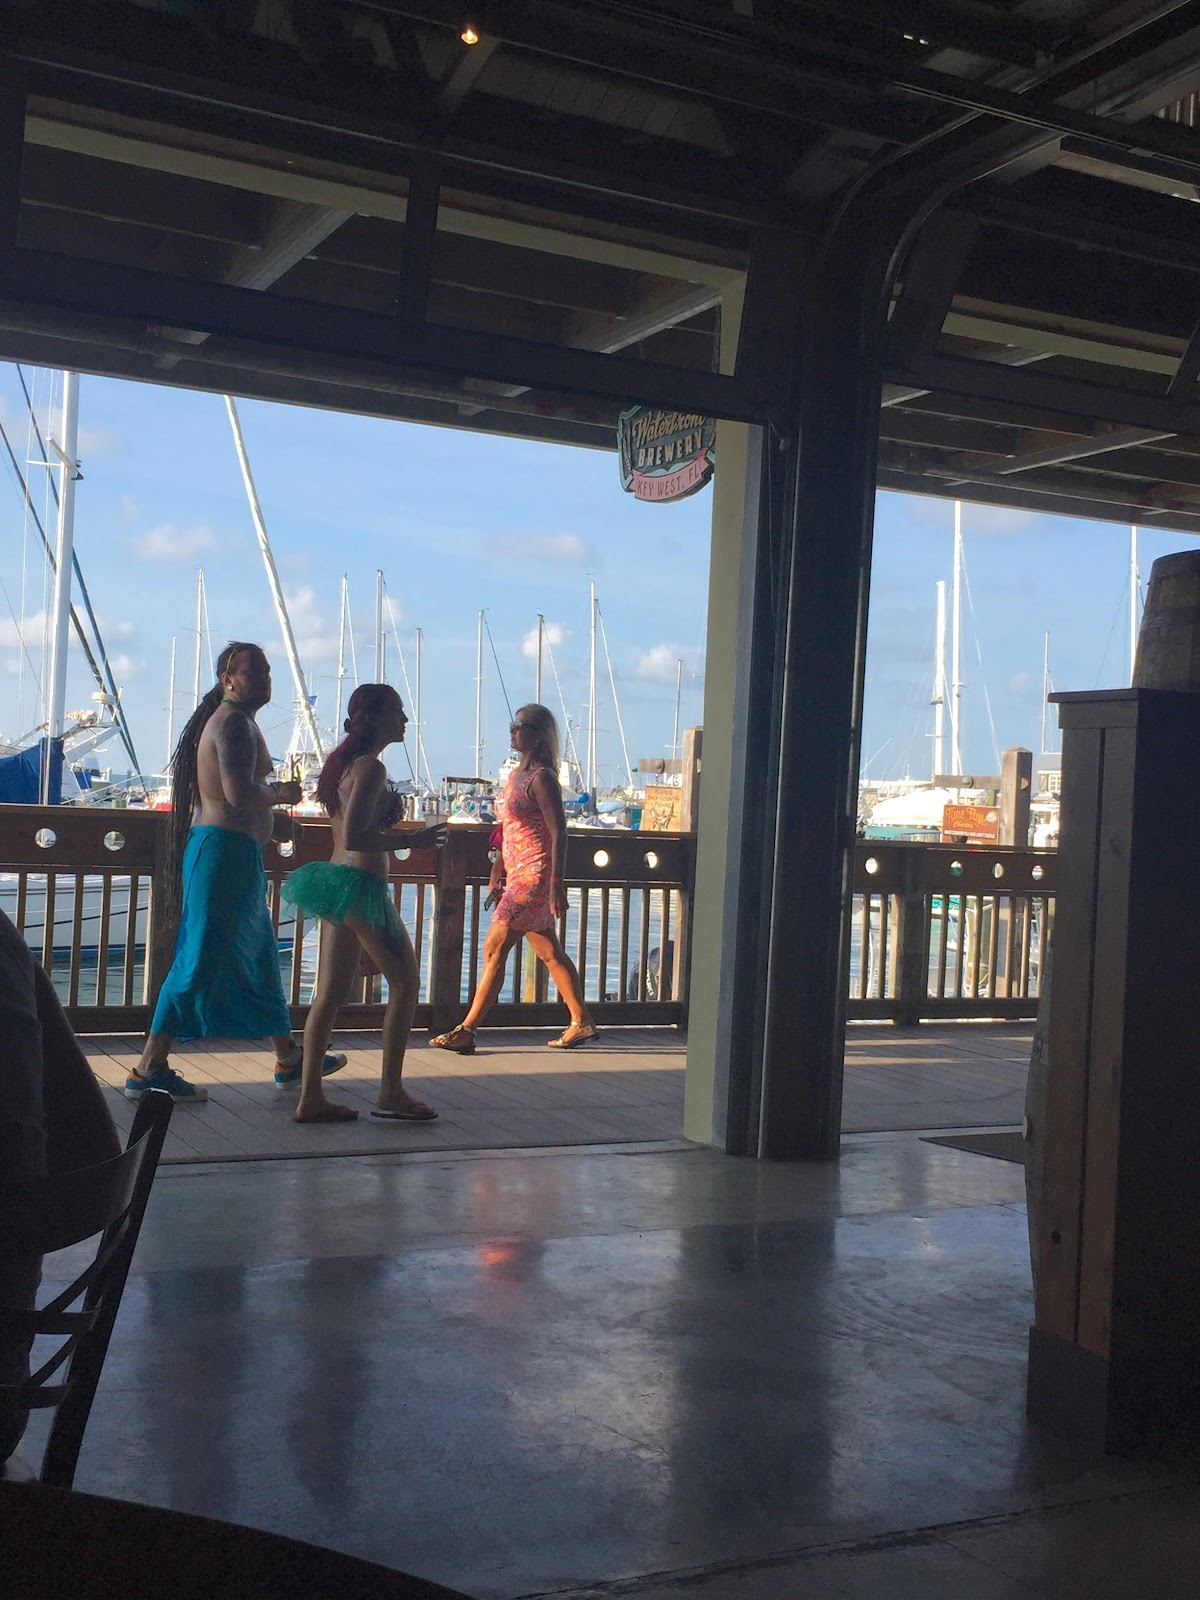 The Key West Ht Waterfront Is Owned By City It S One Of Those Smart Moves Which Pays Dividends Over Years And Deserves To Be Emulated Sitting